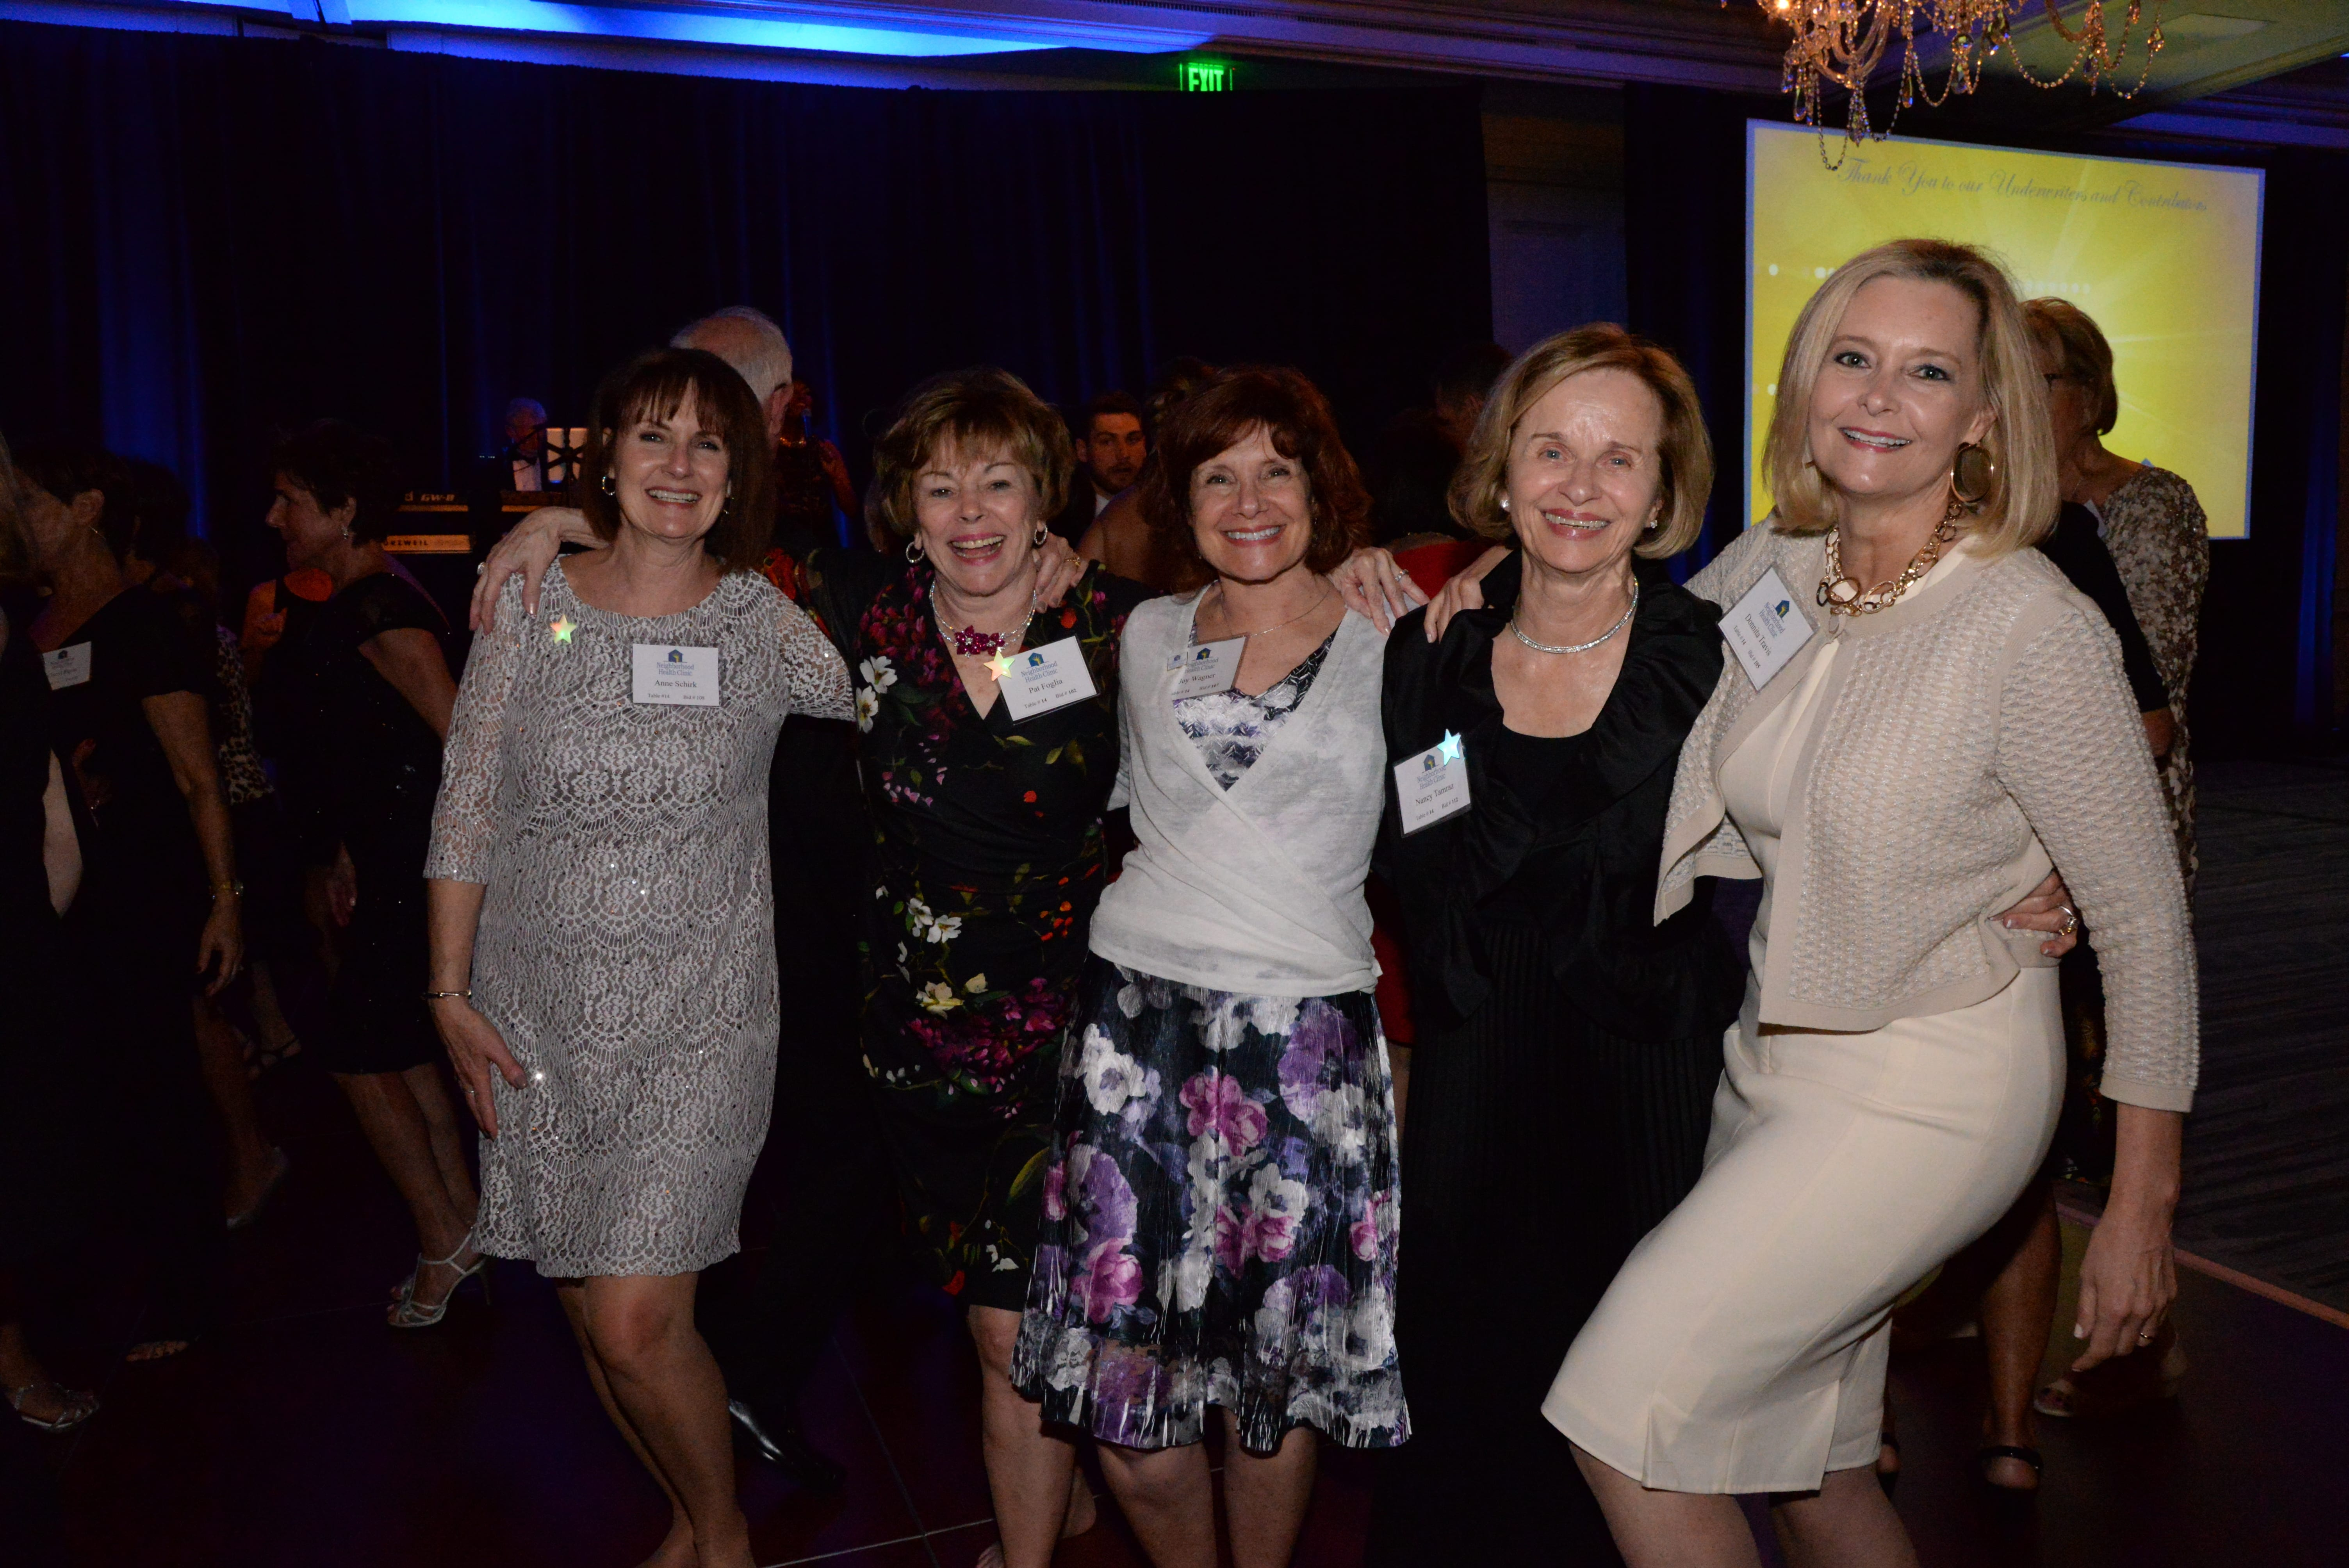 Anne Schirk, Pat Foglia, Joy Wagner, Nancy Tamraz, Donnita Travis